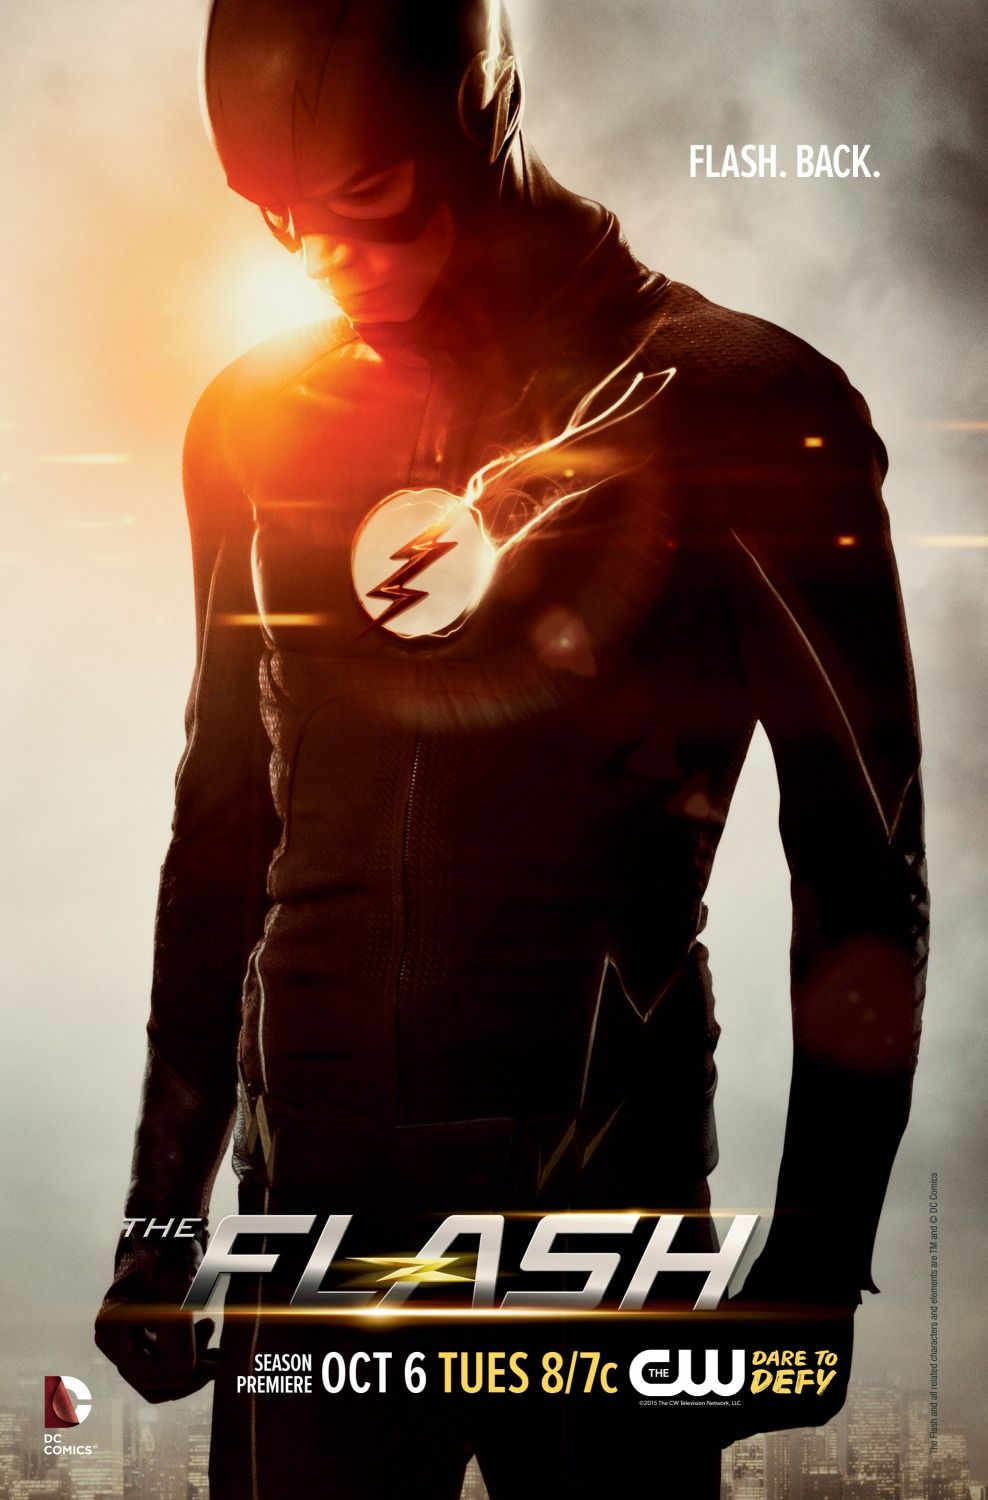 The Flash S3